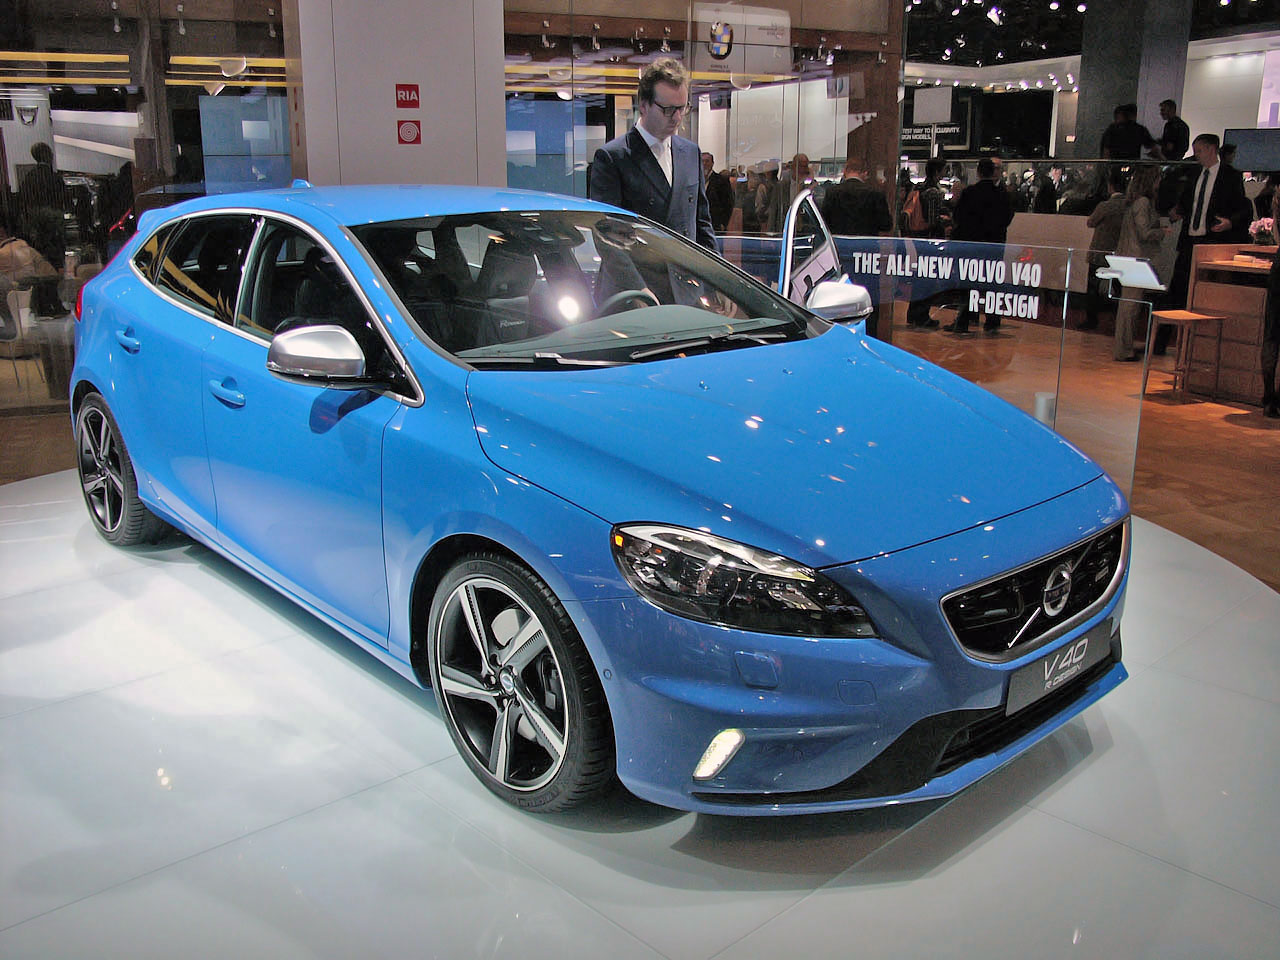 Volvo Certified Pre Owned >> 2013 Volvo V40 R-Design leaves us feeling blue in Paris - Autoblog